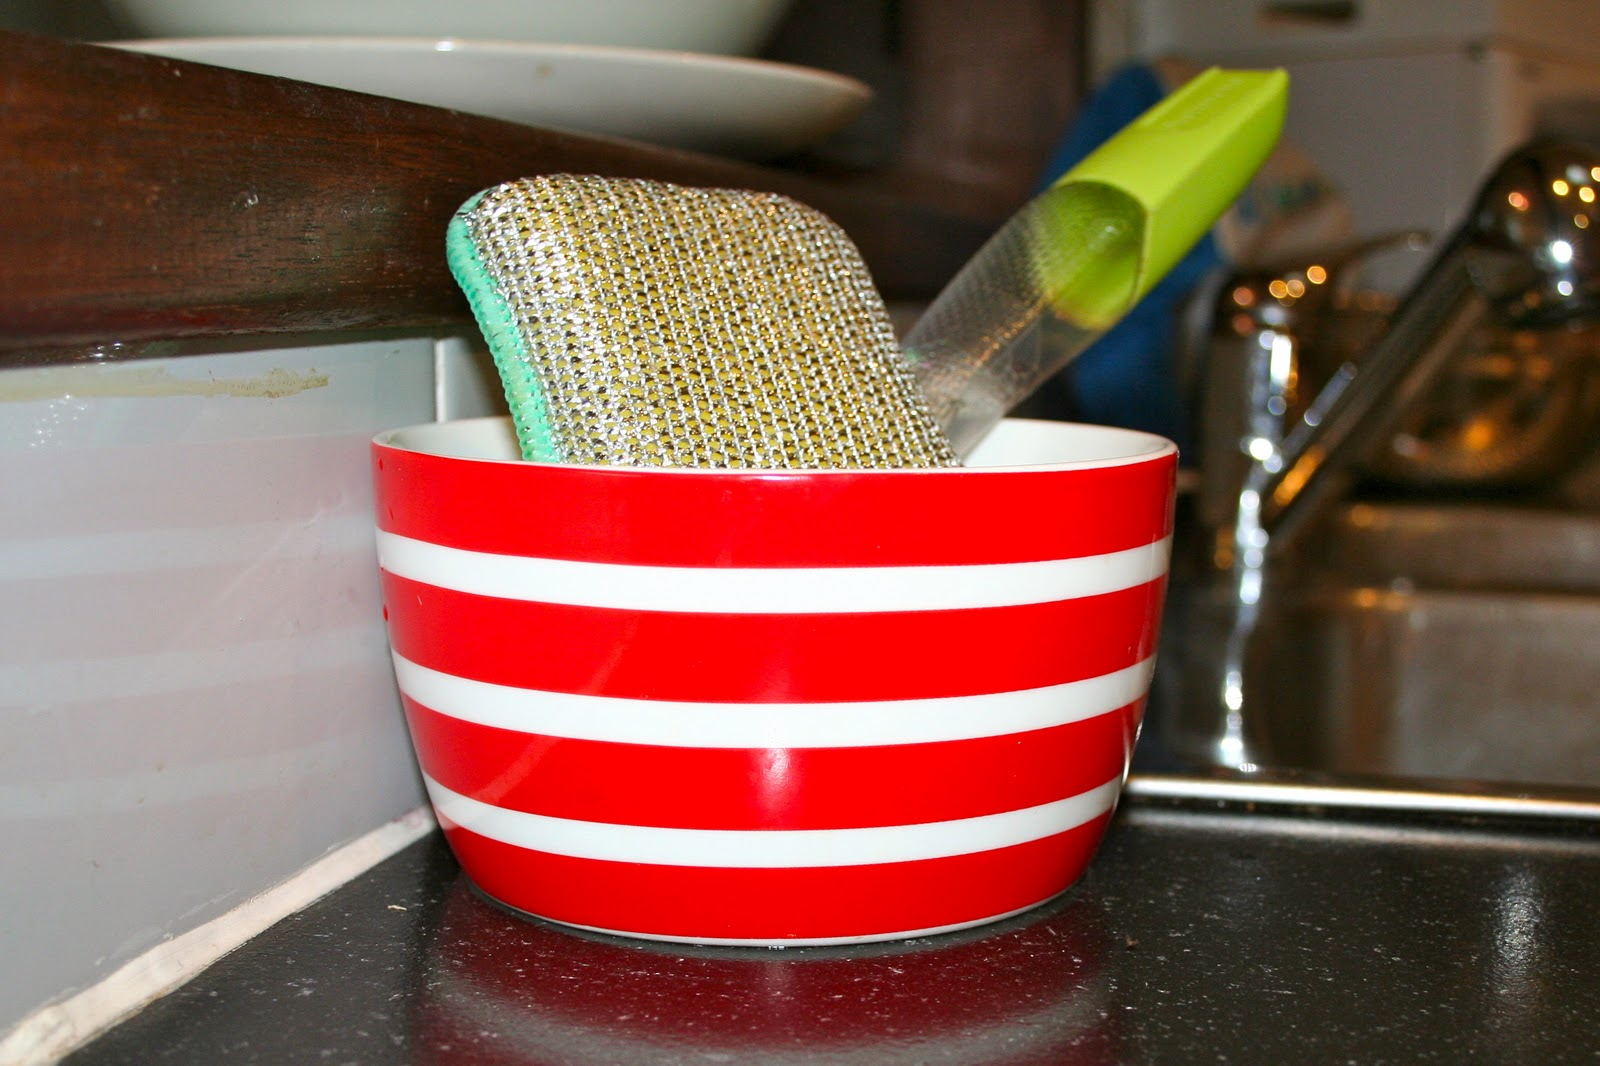 diy kitchen dish brush and sponge holder - Kitchen Sponge Holder